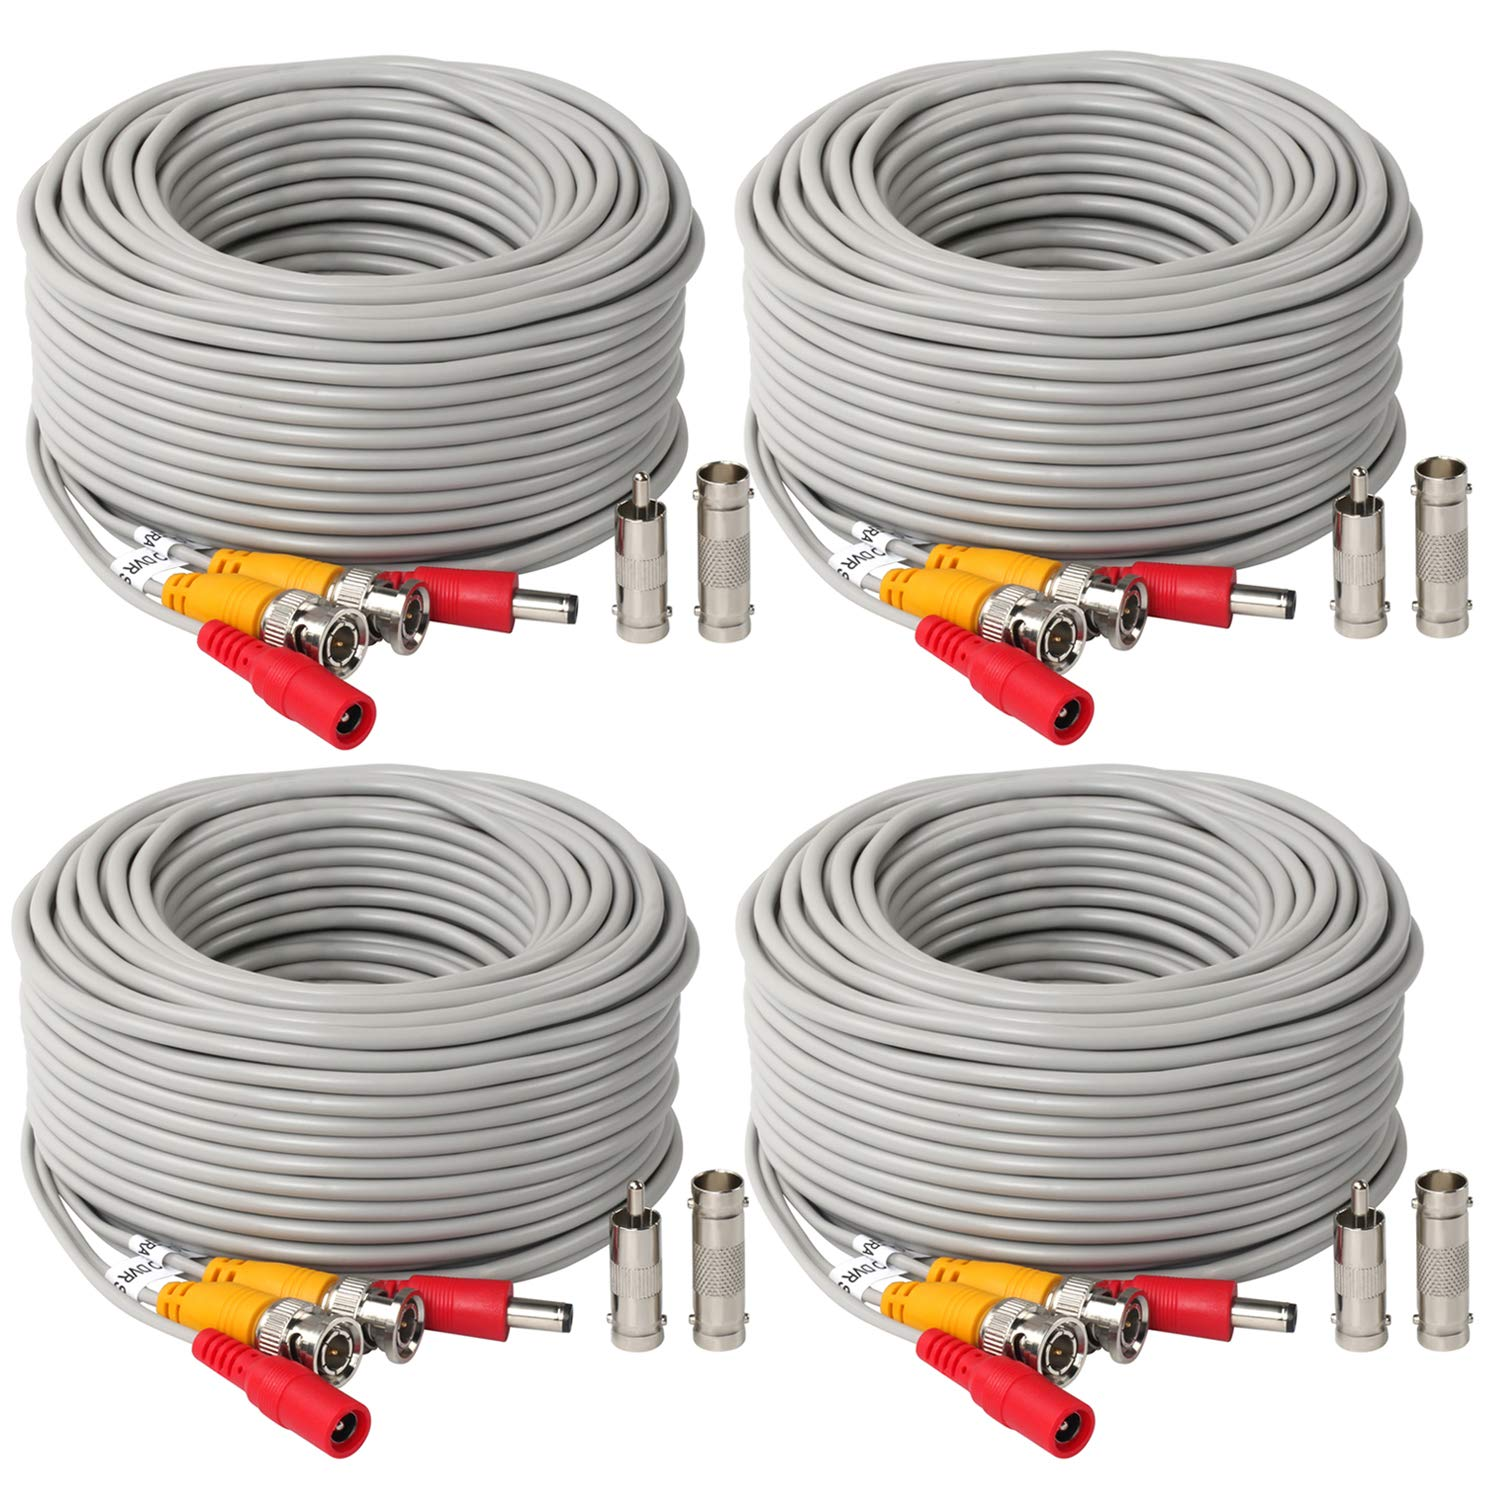 4Pack 150Feet BNC Vedio Power Cable Pre-Made Al-in-One Camera Video BNC Cable Wire Cord Gray Color for Surveillance CCTV Security System with Connectors(BNC Female and BNC to RCA) by SHD